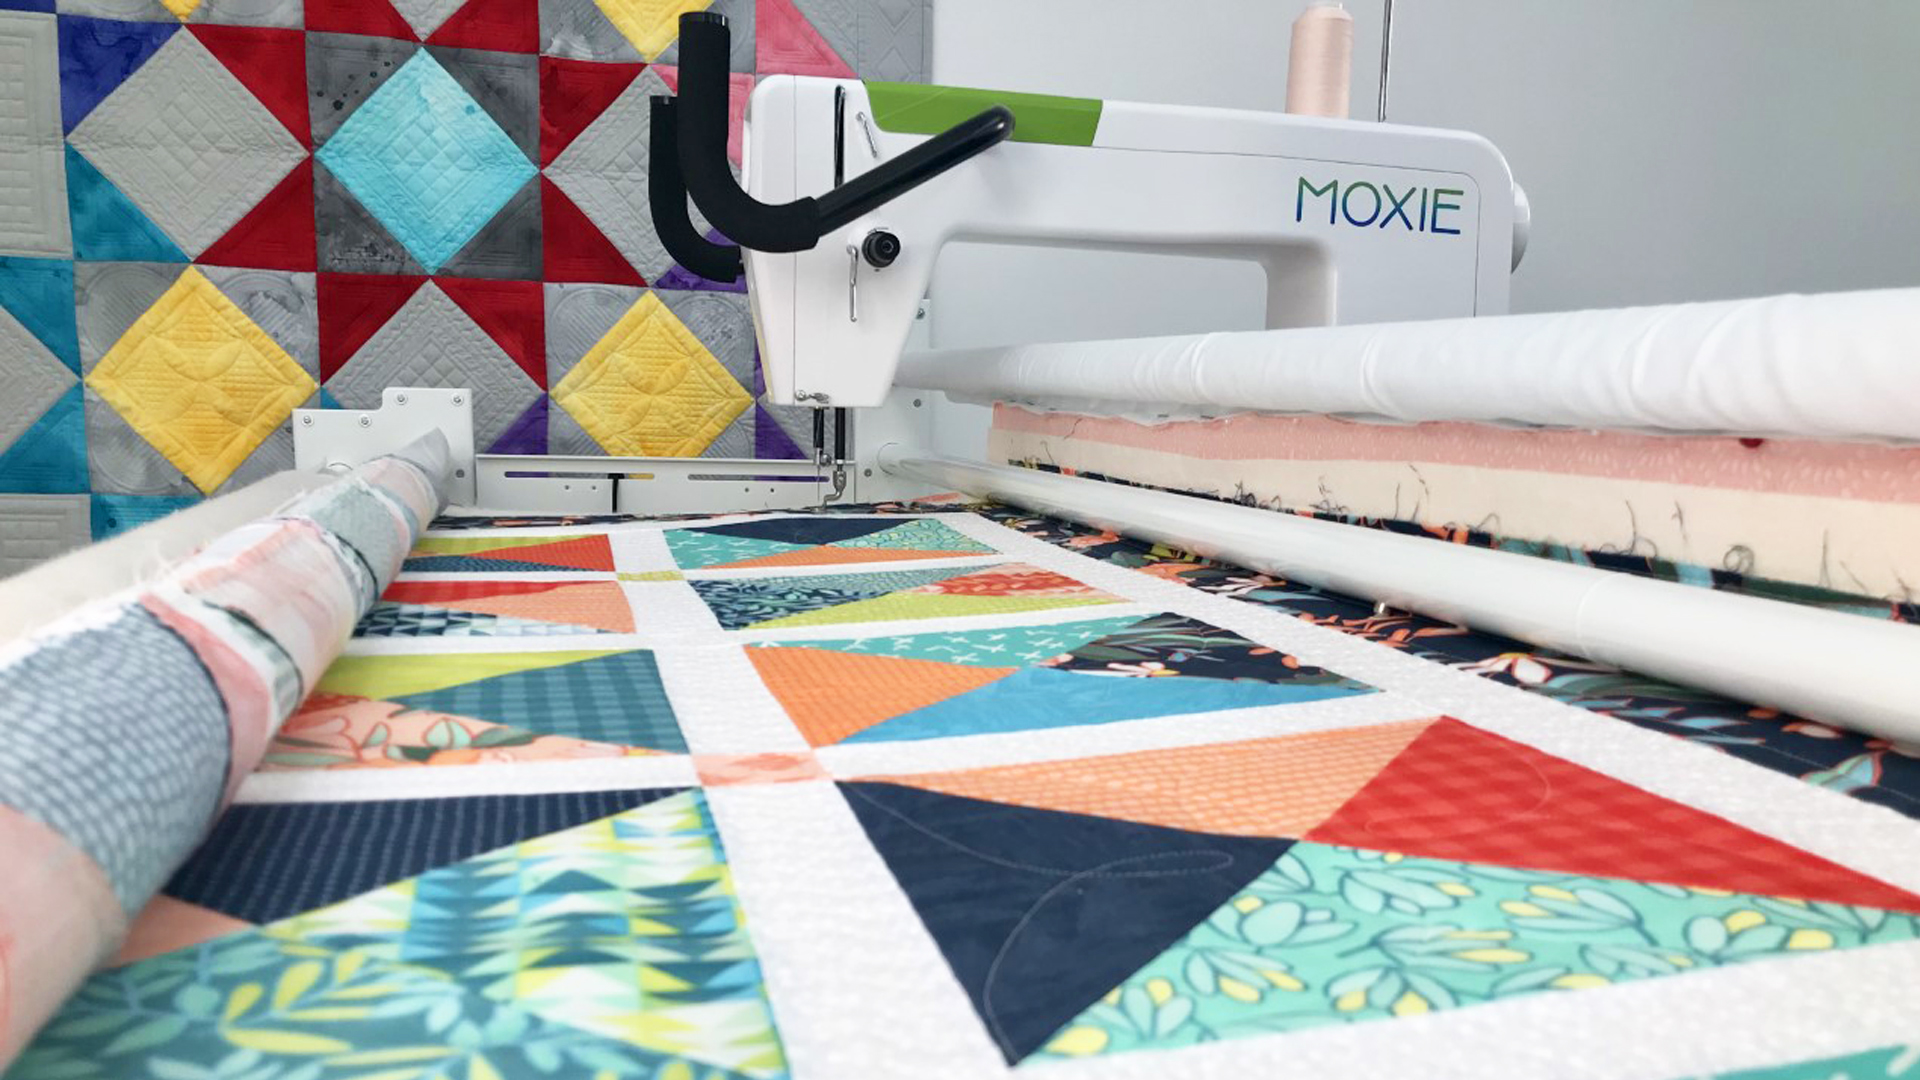 Quilt with Handi Quilter Moxie in the background